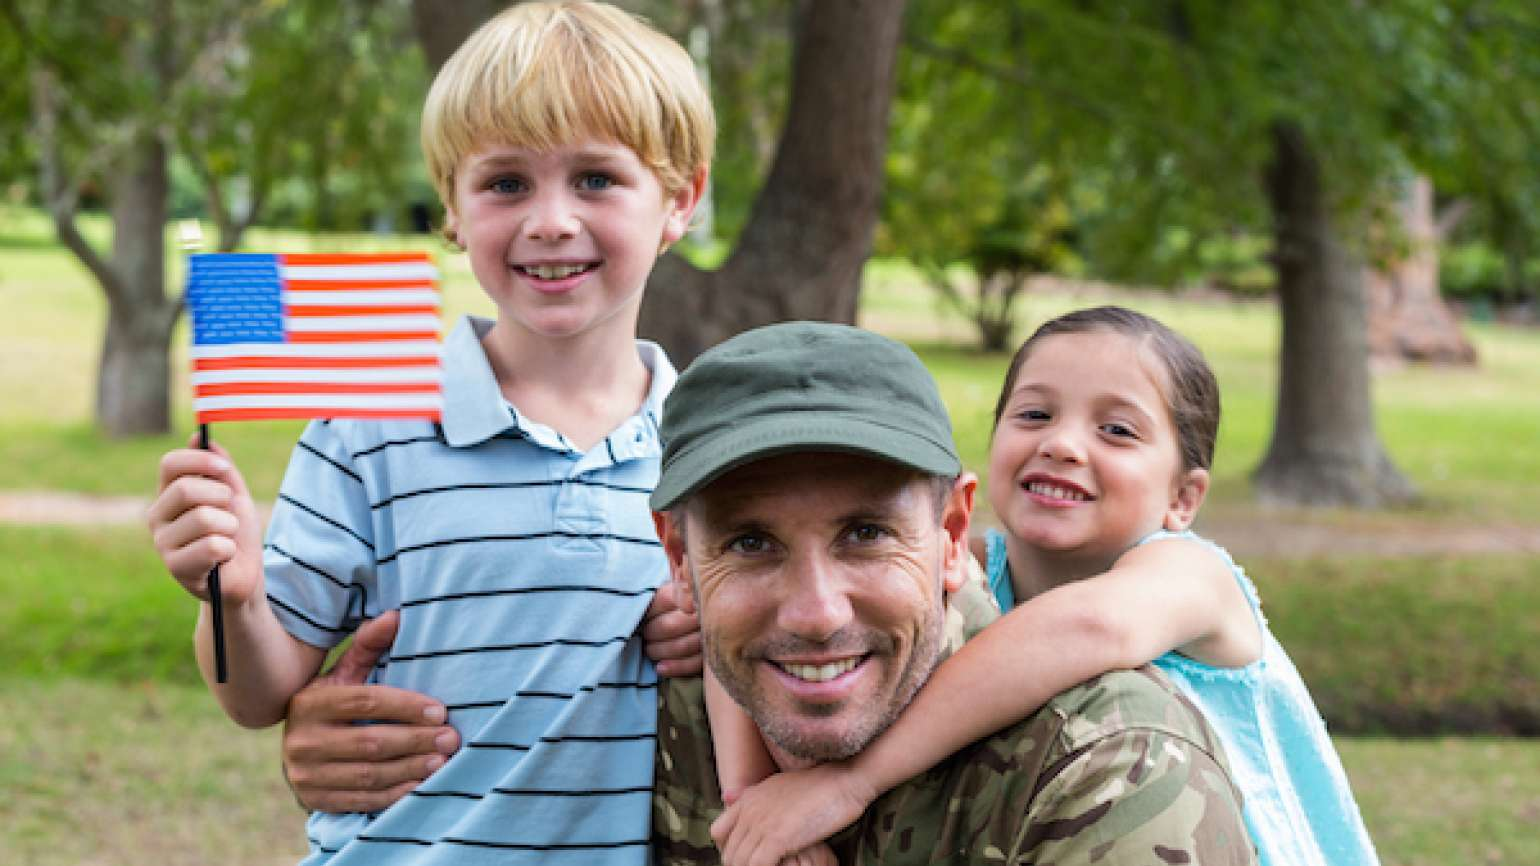 5 reminders of hope when military life gets tough